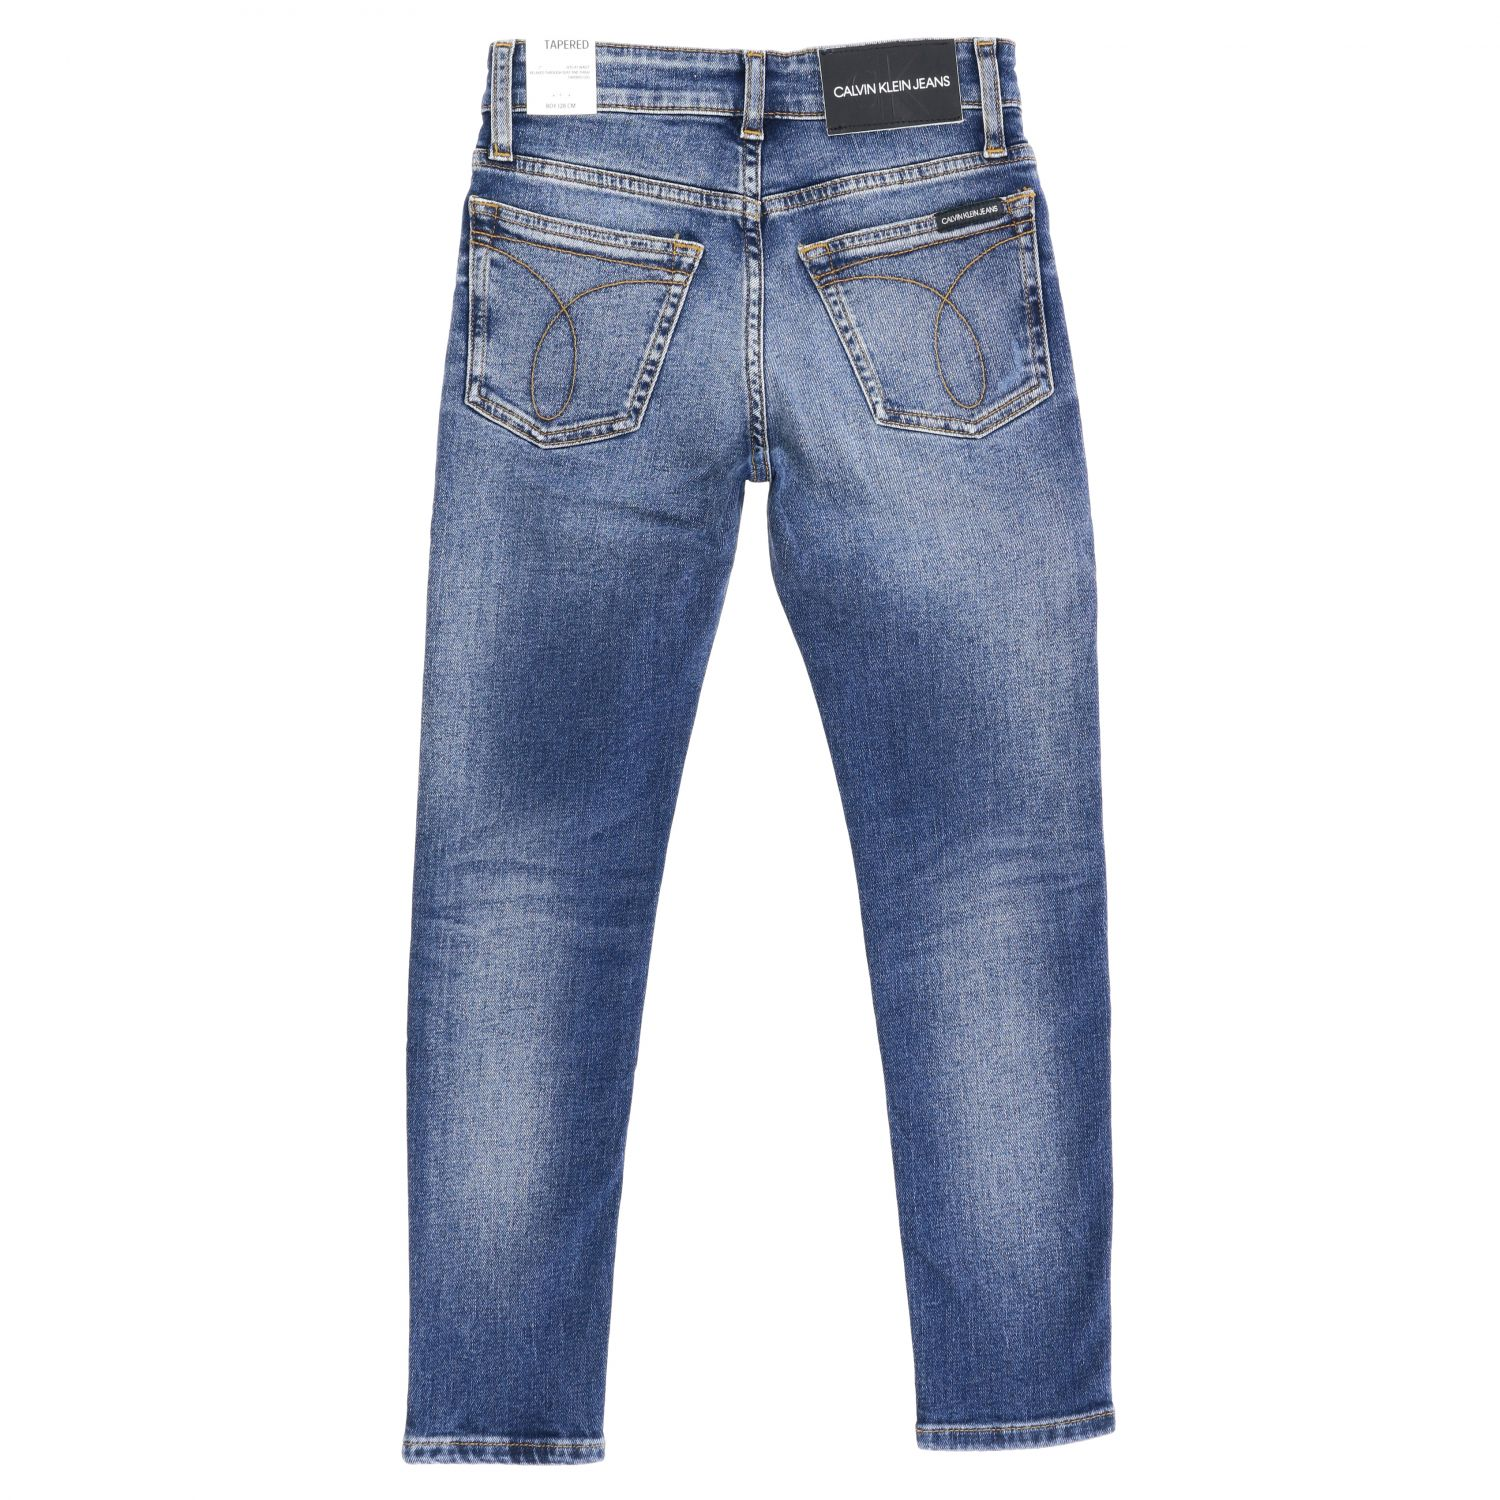 Calvin Klein jeans in used denim with tears blue 2